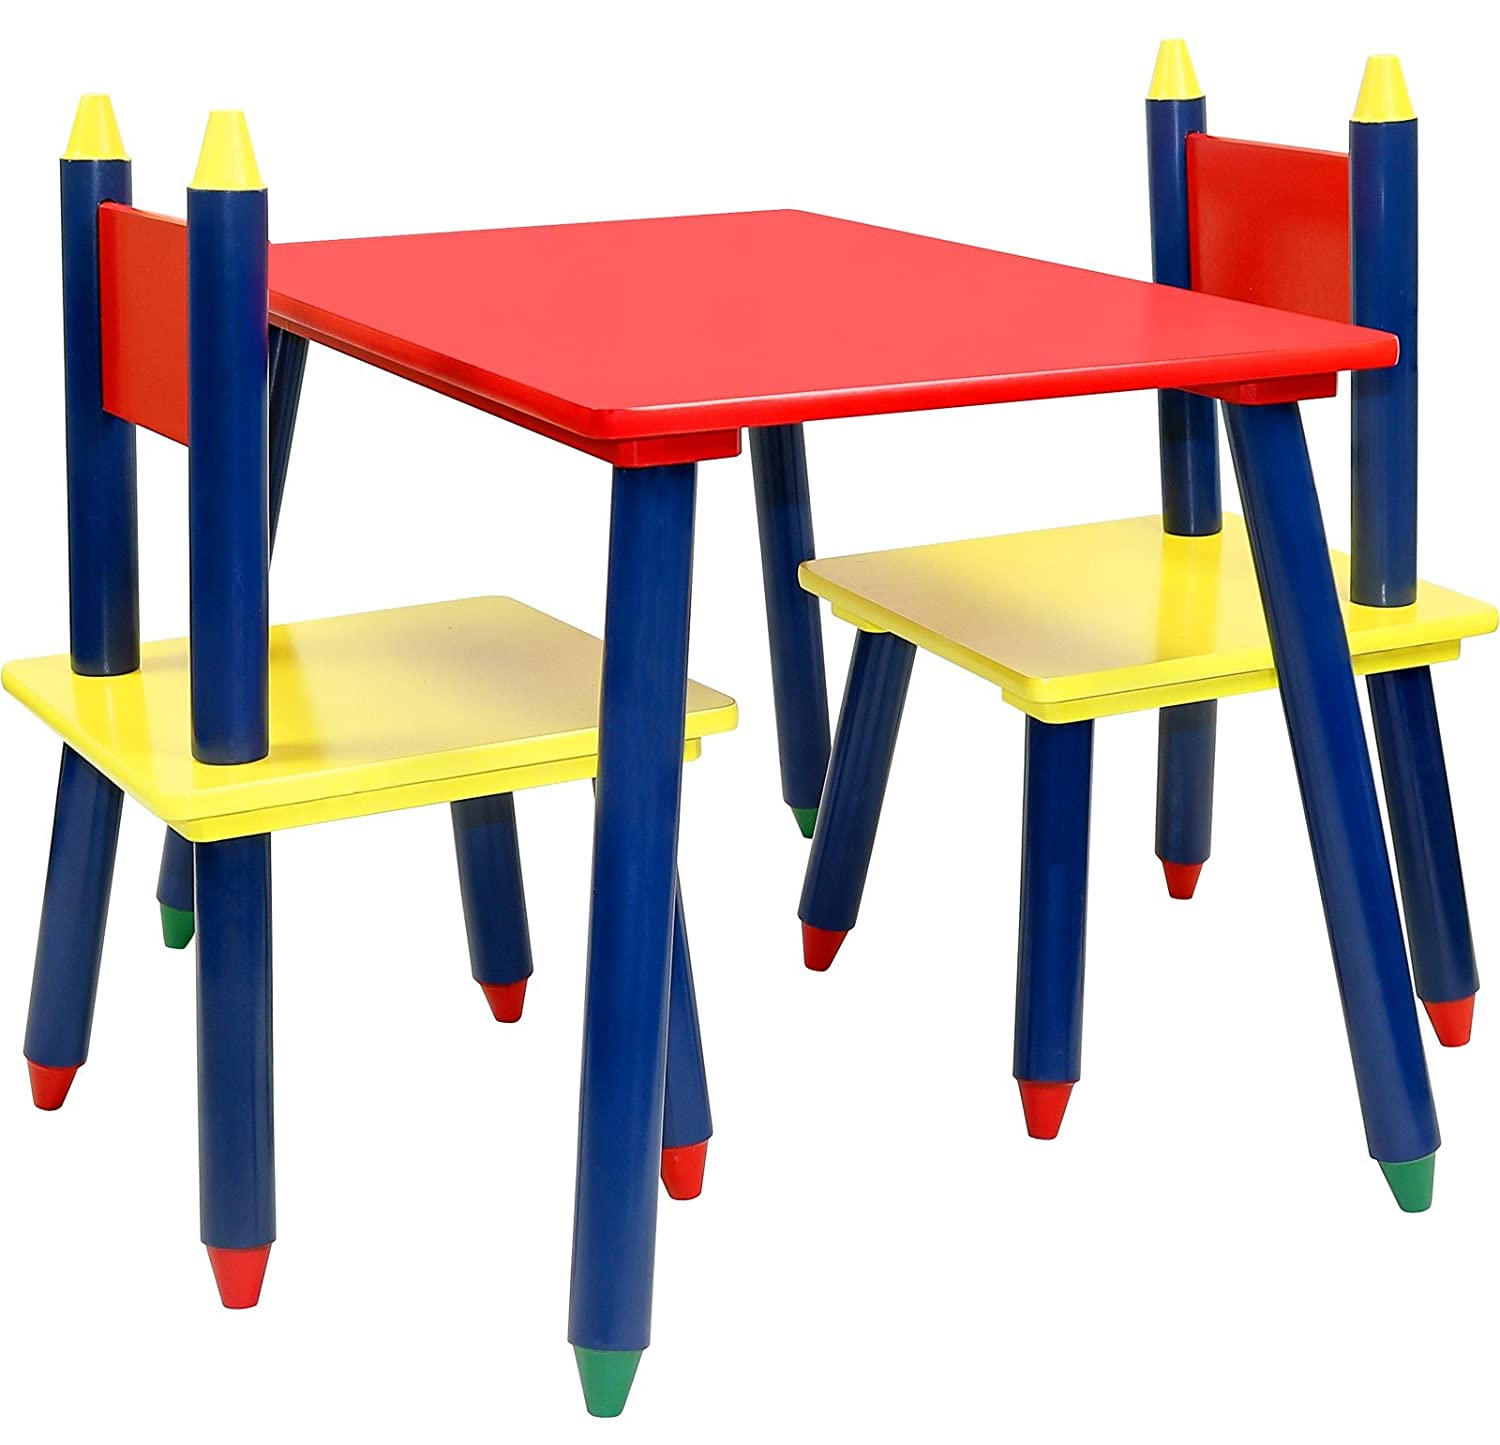 Amazon.com Click N\u0027 Play Wooden Kids Table and Chair SetCrayon Themed Play Room Furniture Home \u0026 Kitchen  sc 1 st  Amazon.com & Amazon.com: Click N\u0027 Play Wooden Kids Table and Chair SetCrayon ...